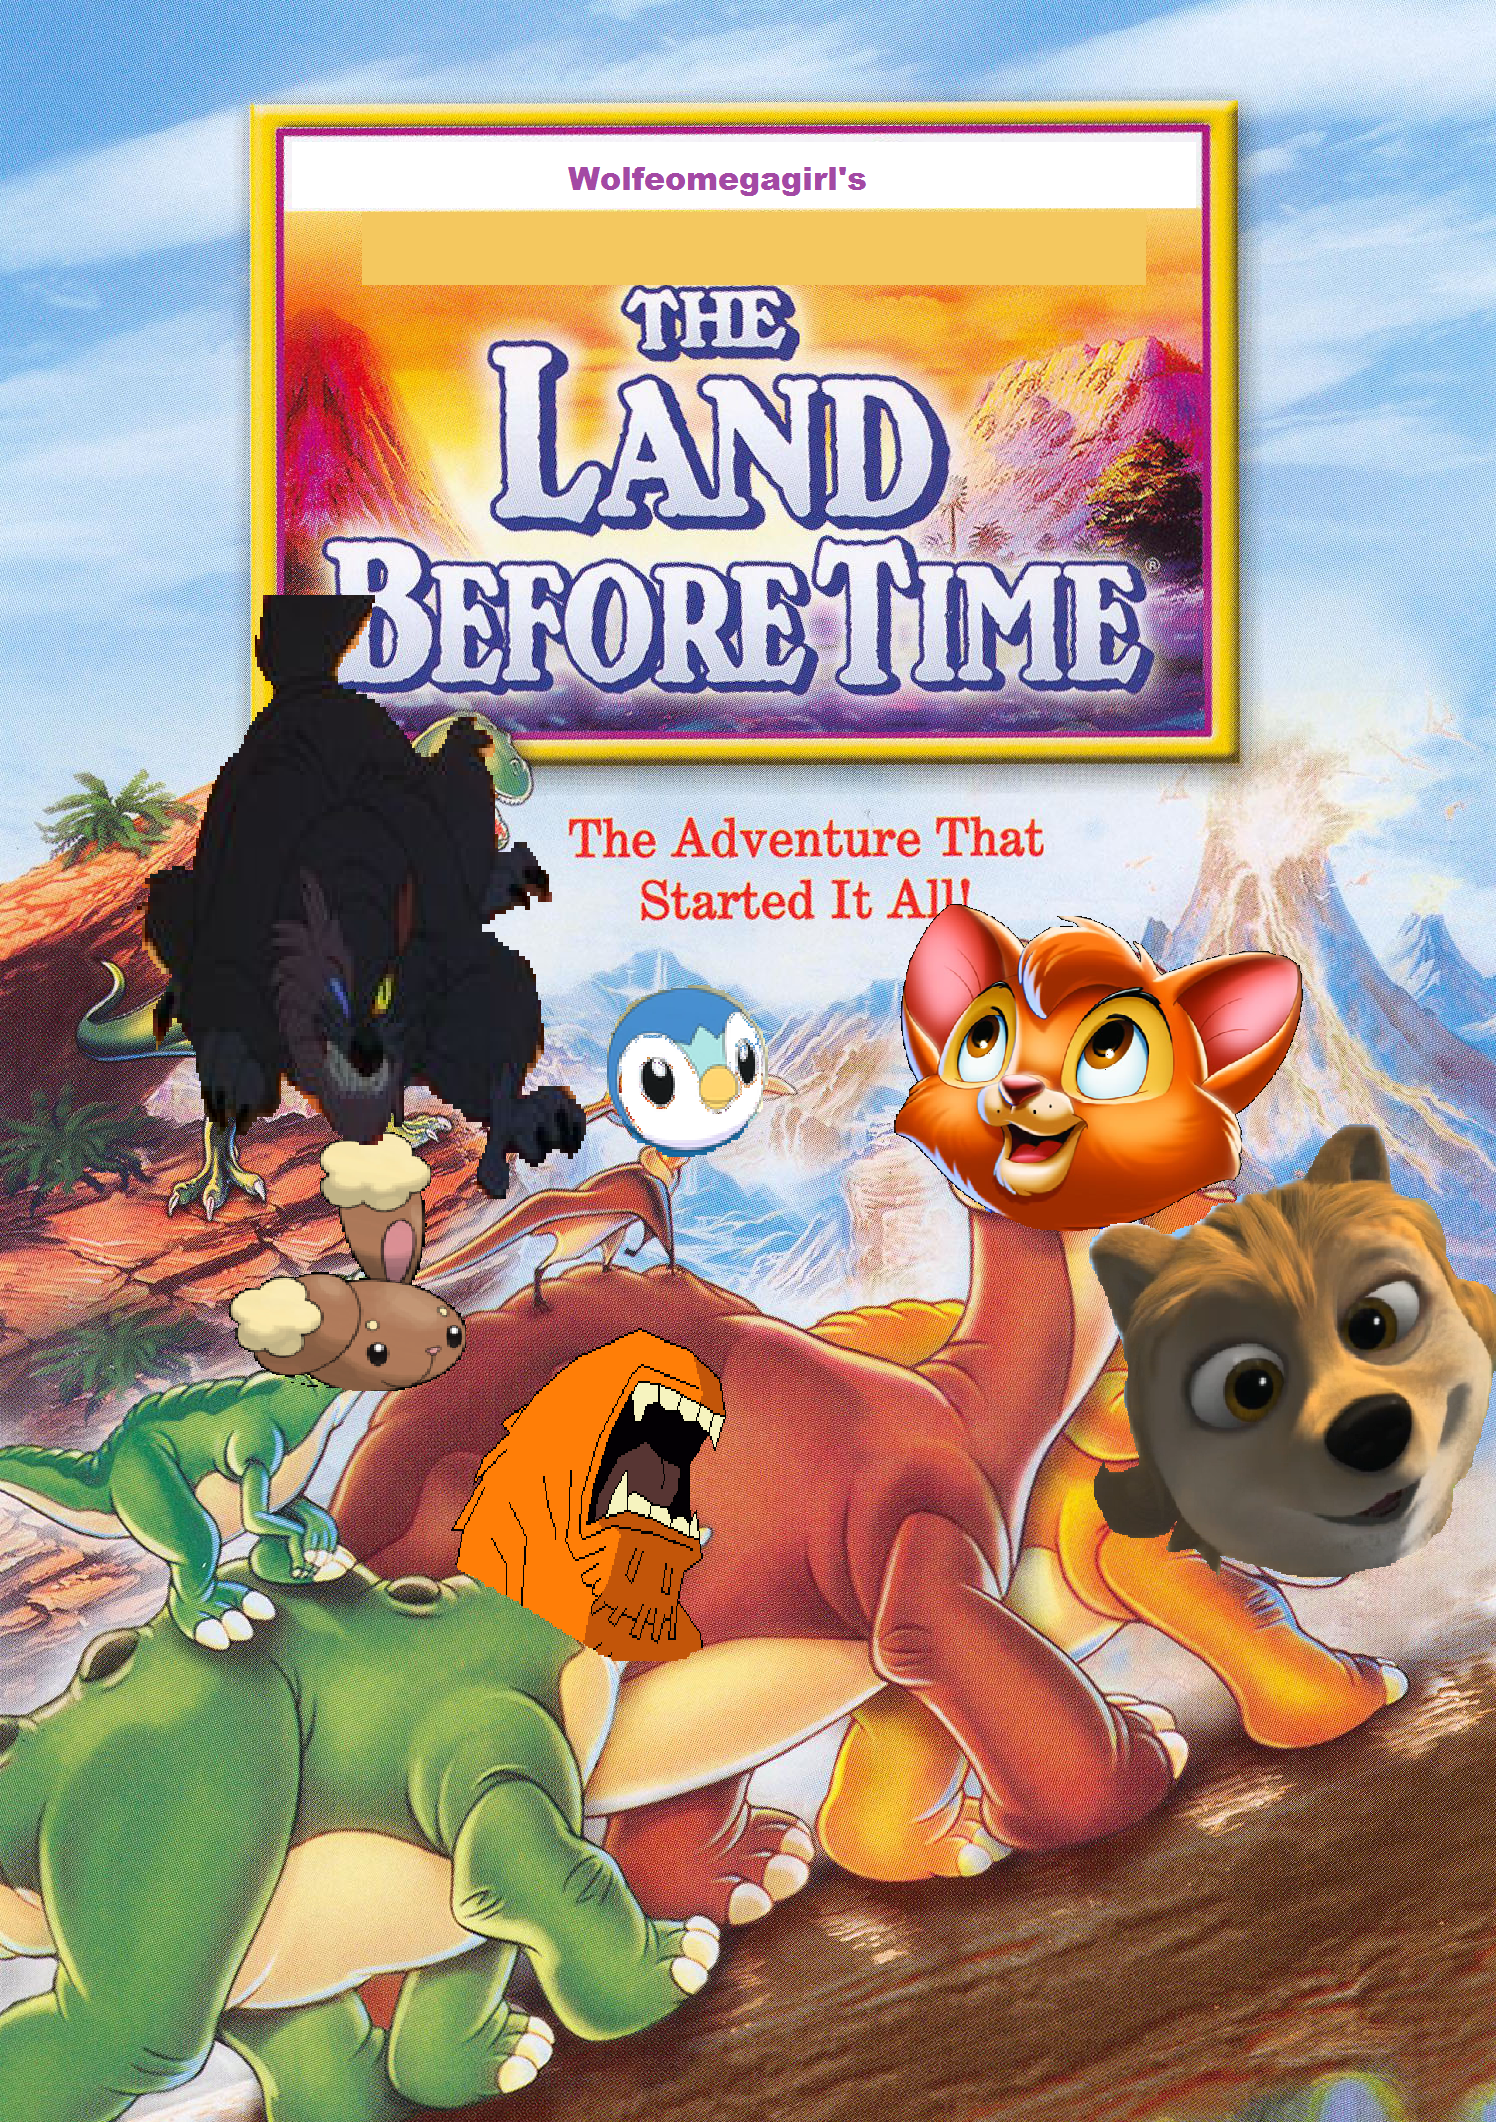 The Land Before Time (Wolfeomegagirl)